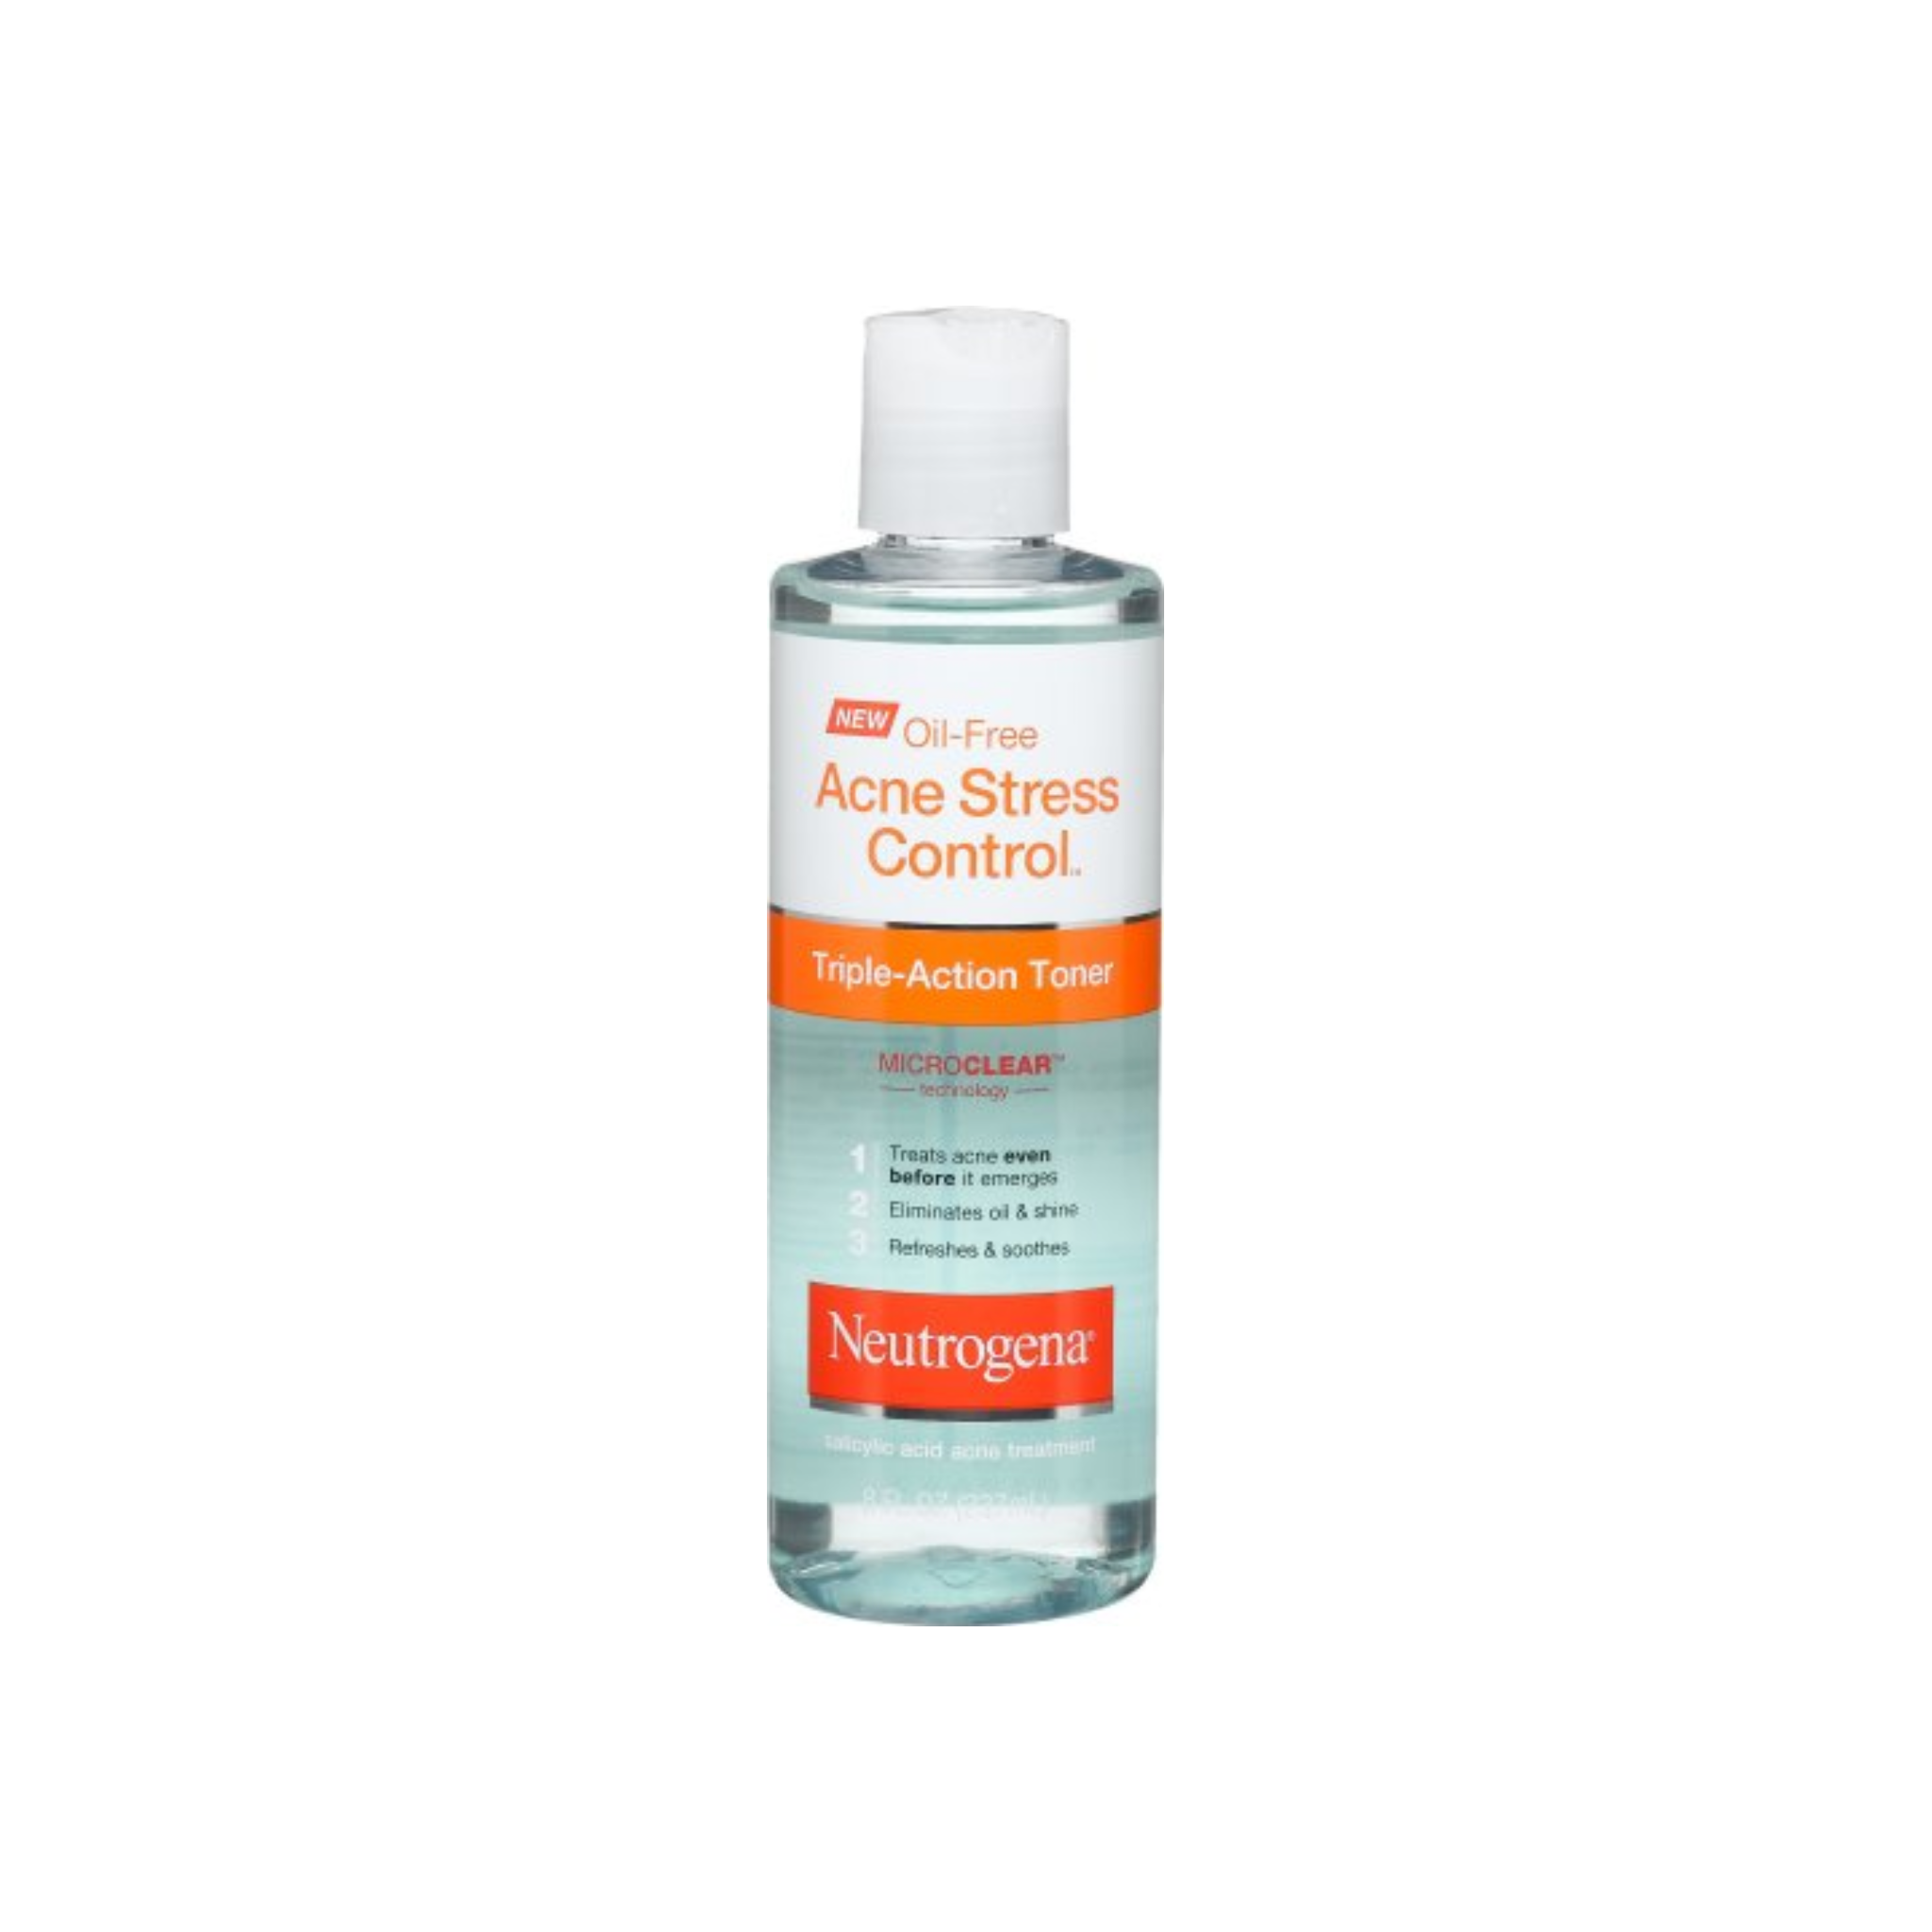 Neutrogena Oil Free Acne Stress Control Triple Action Toner 8 Oz